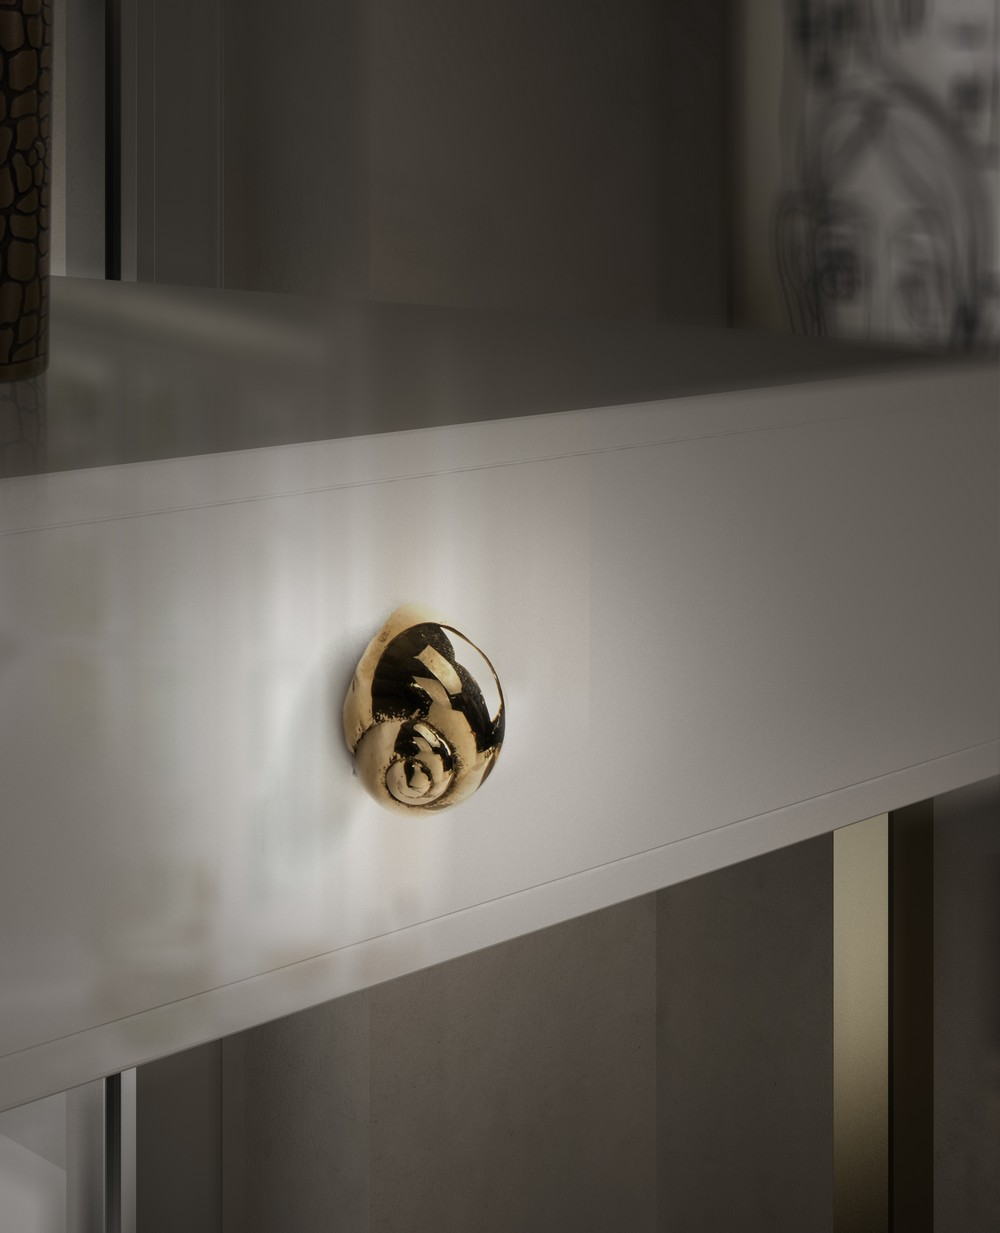 25 Drawer Handles to Modernize Your Furniture Designs 6